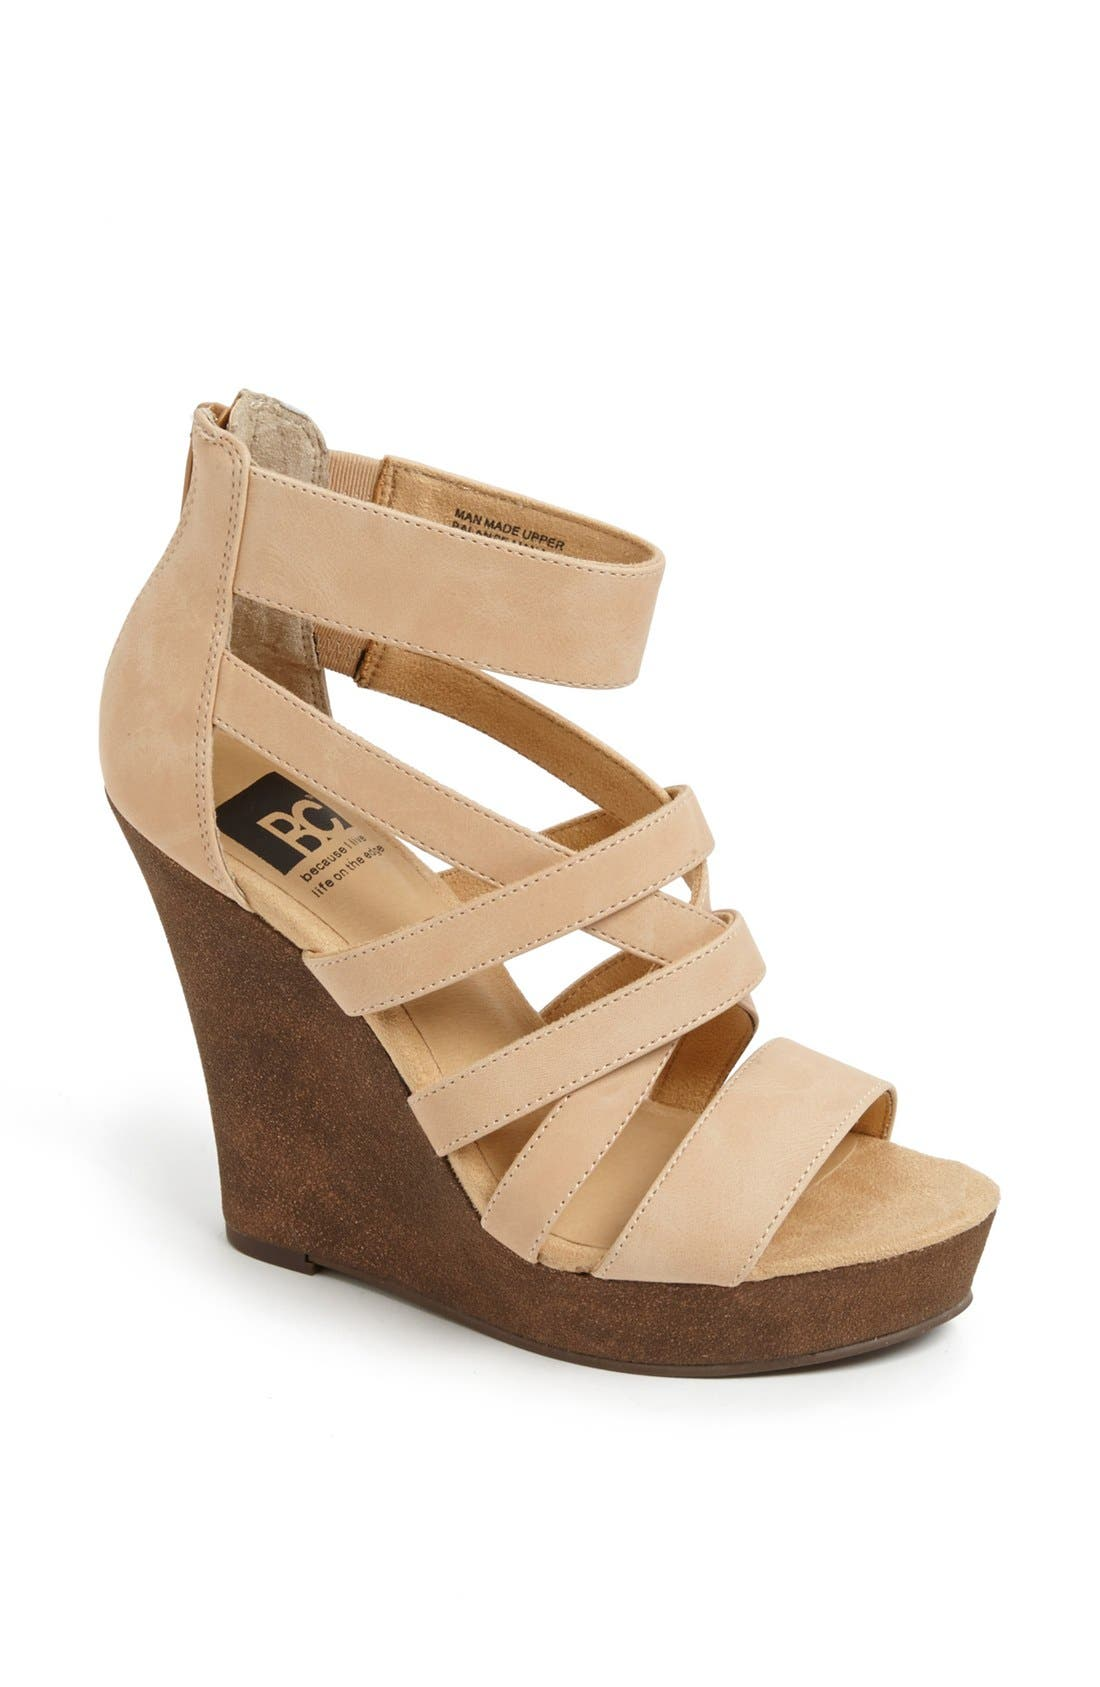 Alternate Image 1 Selected - BC Footwear 'Tell You What' Wedge Sandal